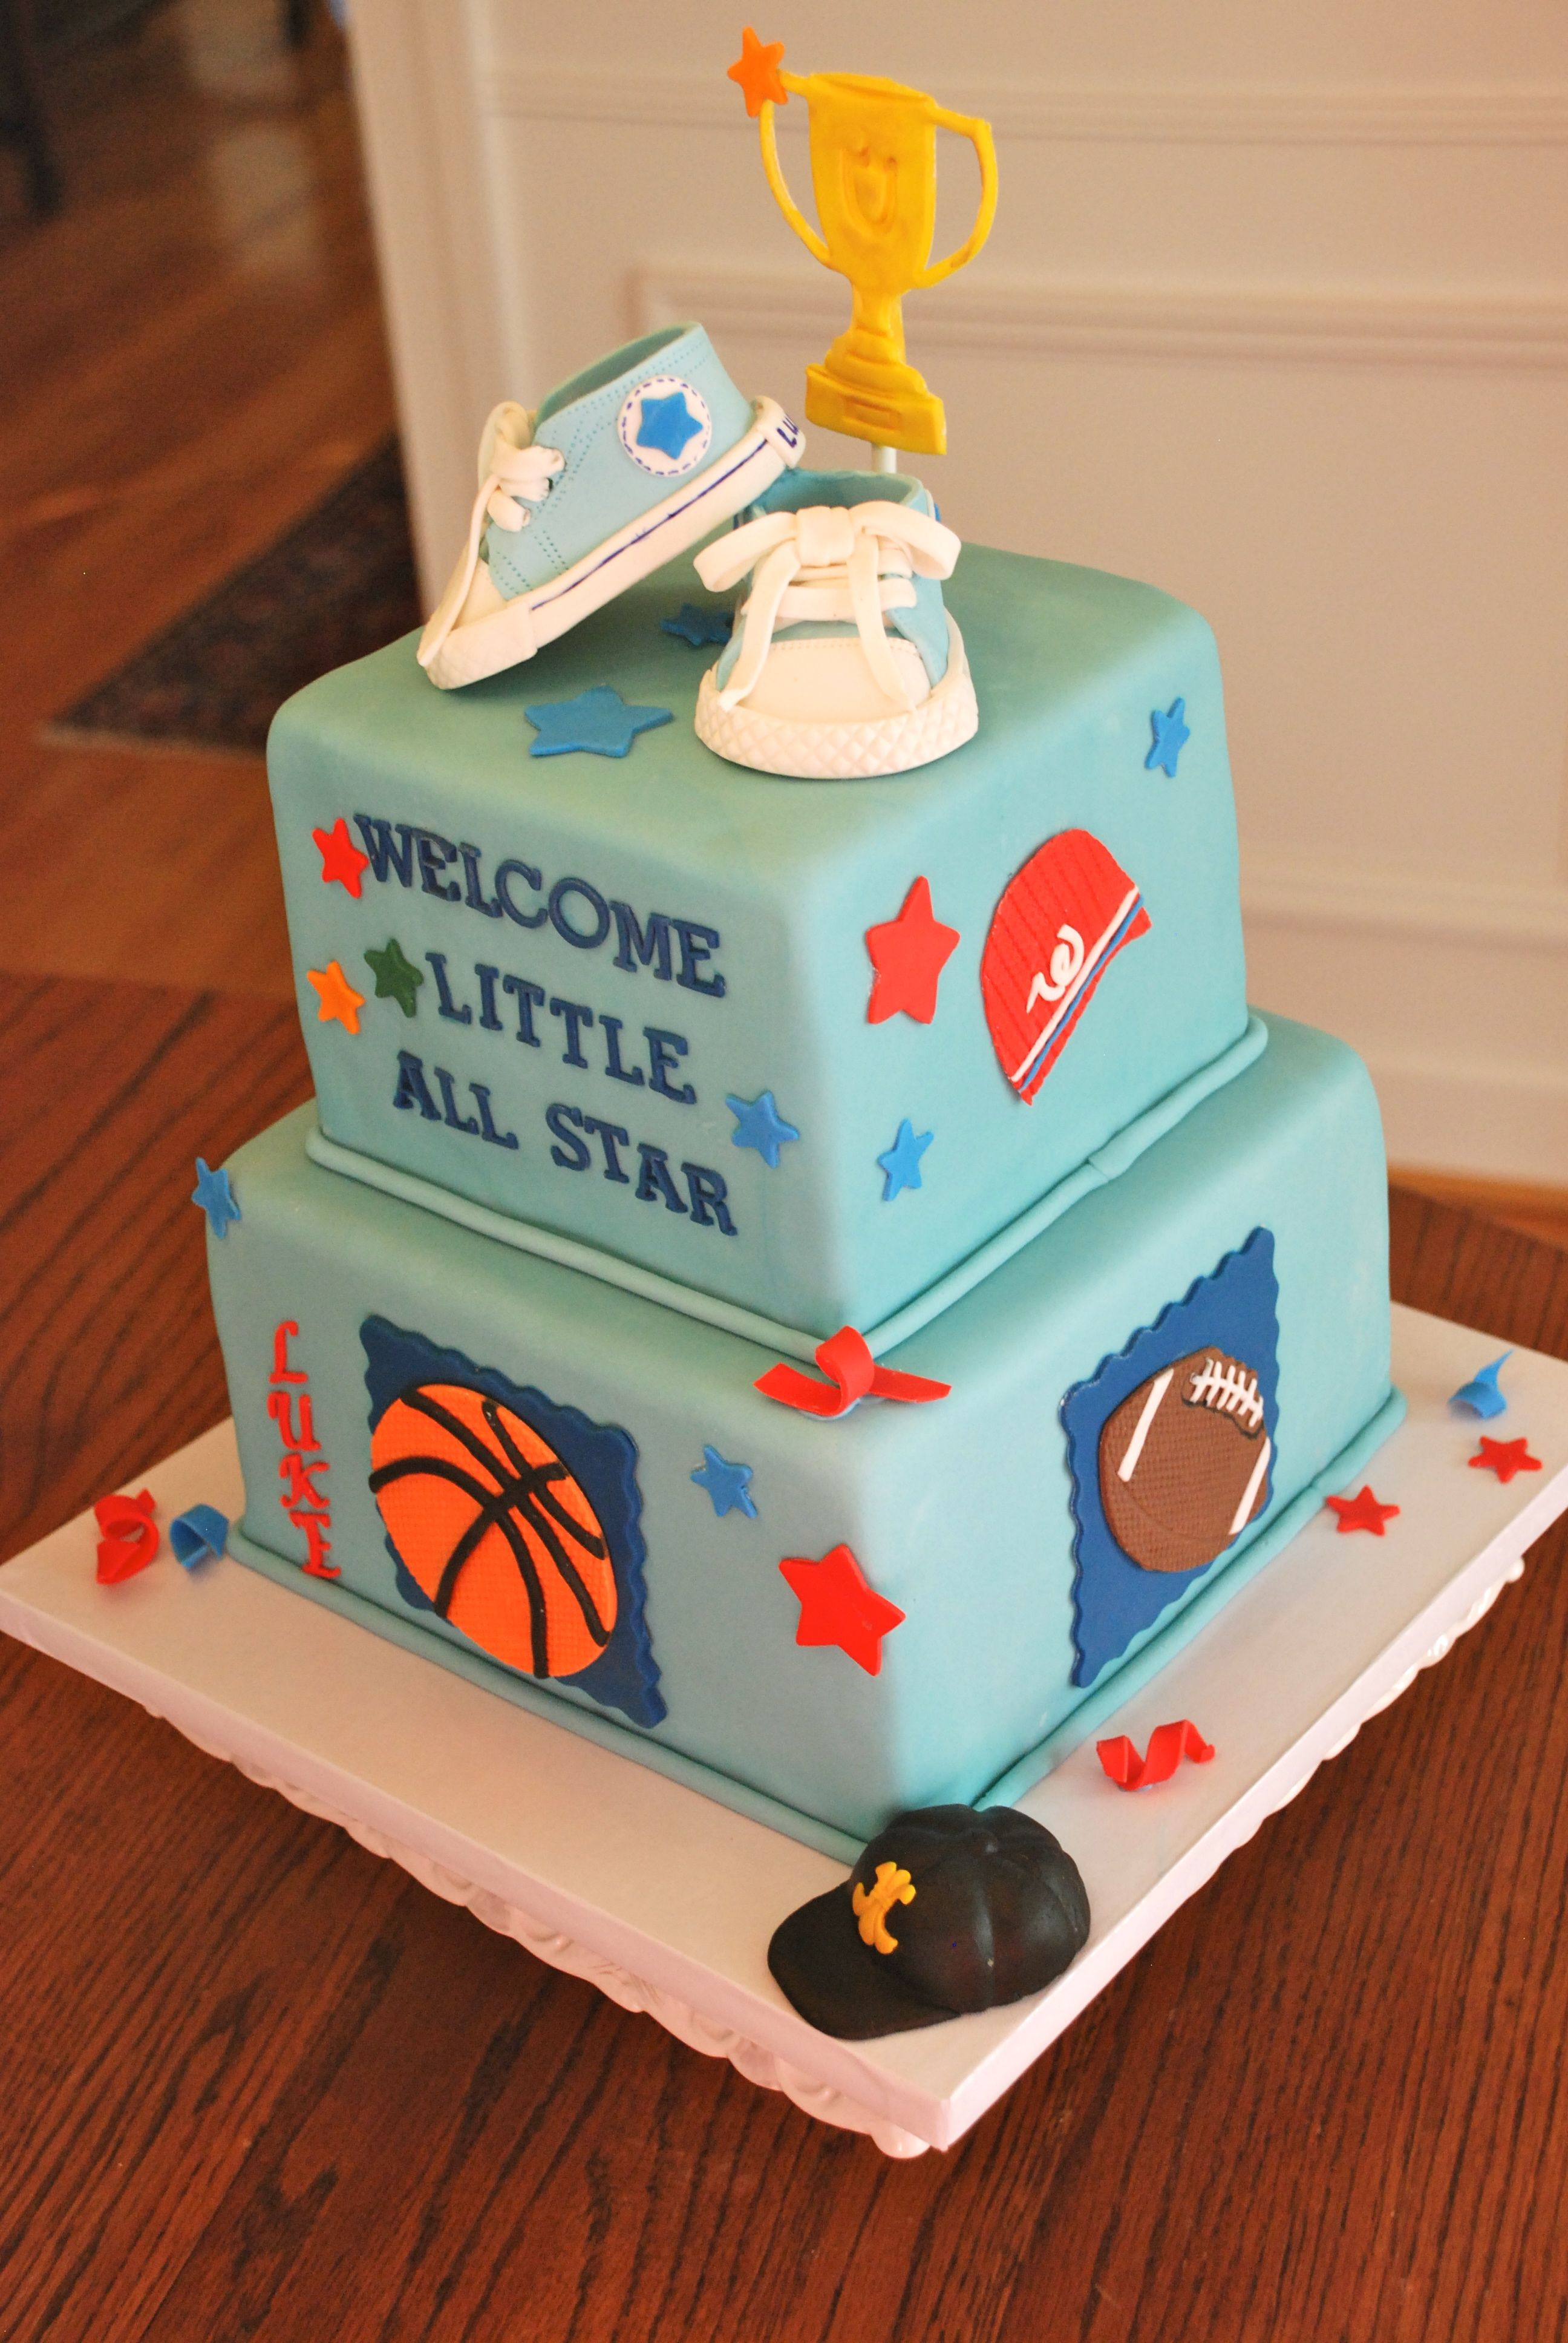 Little All Star Baby Shower Cake With Asst Sports Themes